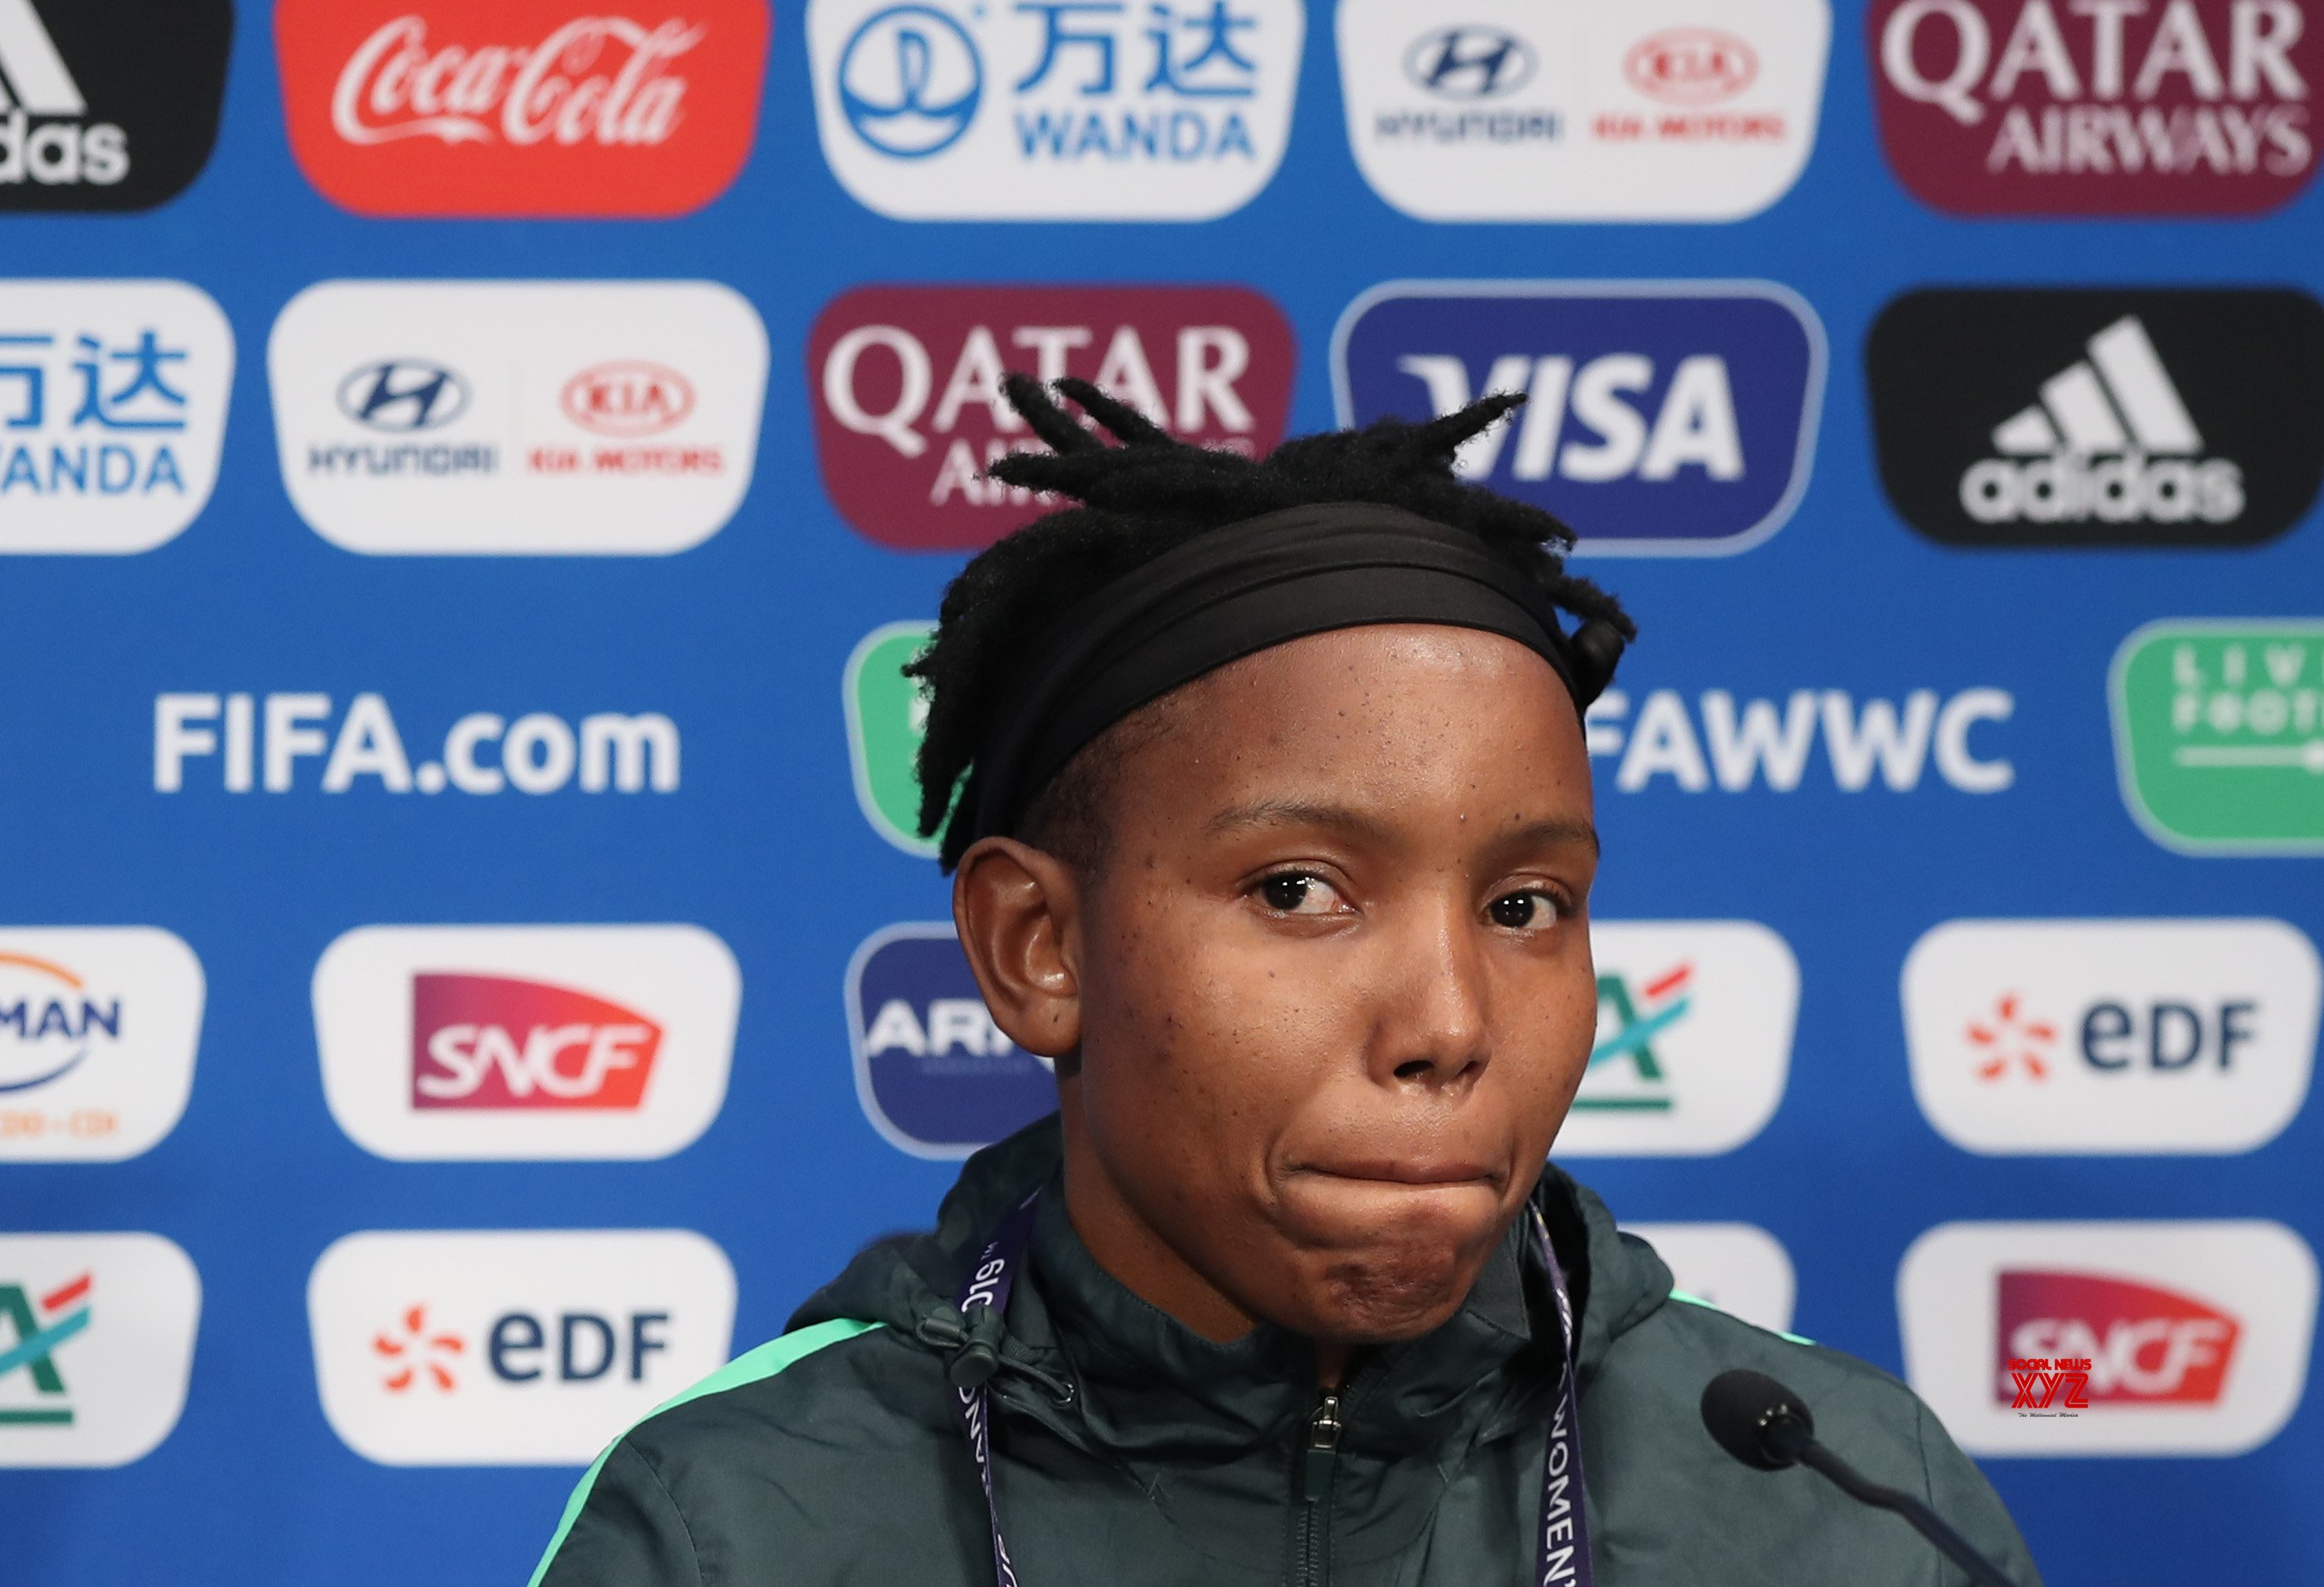 FRANCE - PARIS - 2019 FIFA WOMEN'S WORLD CUP - GROUP B - SOUTH AFRICA - OFFICIAL PRESS #Gallery